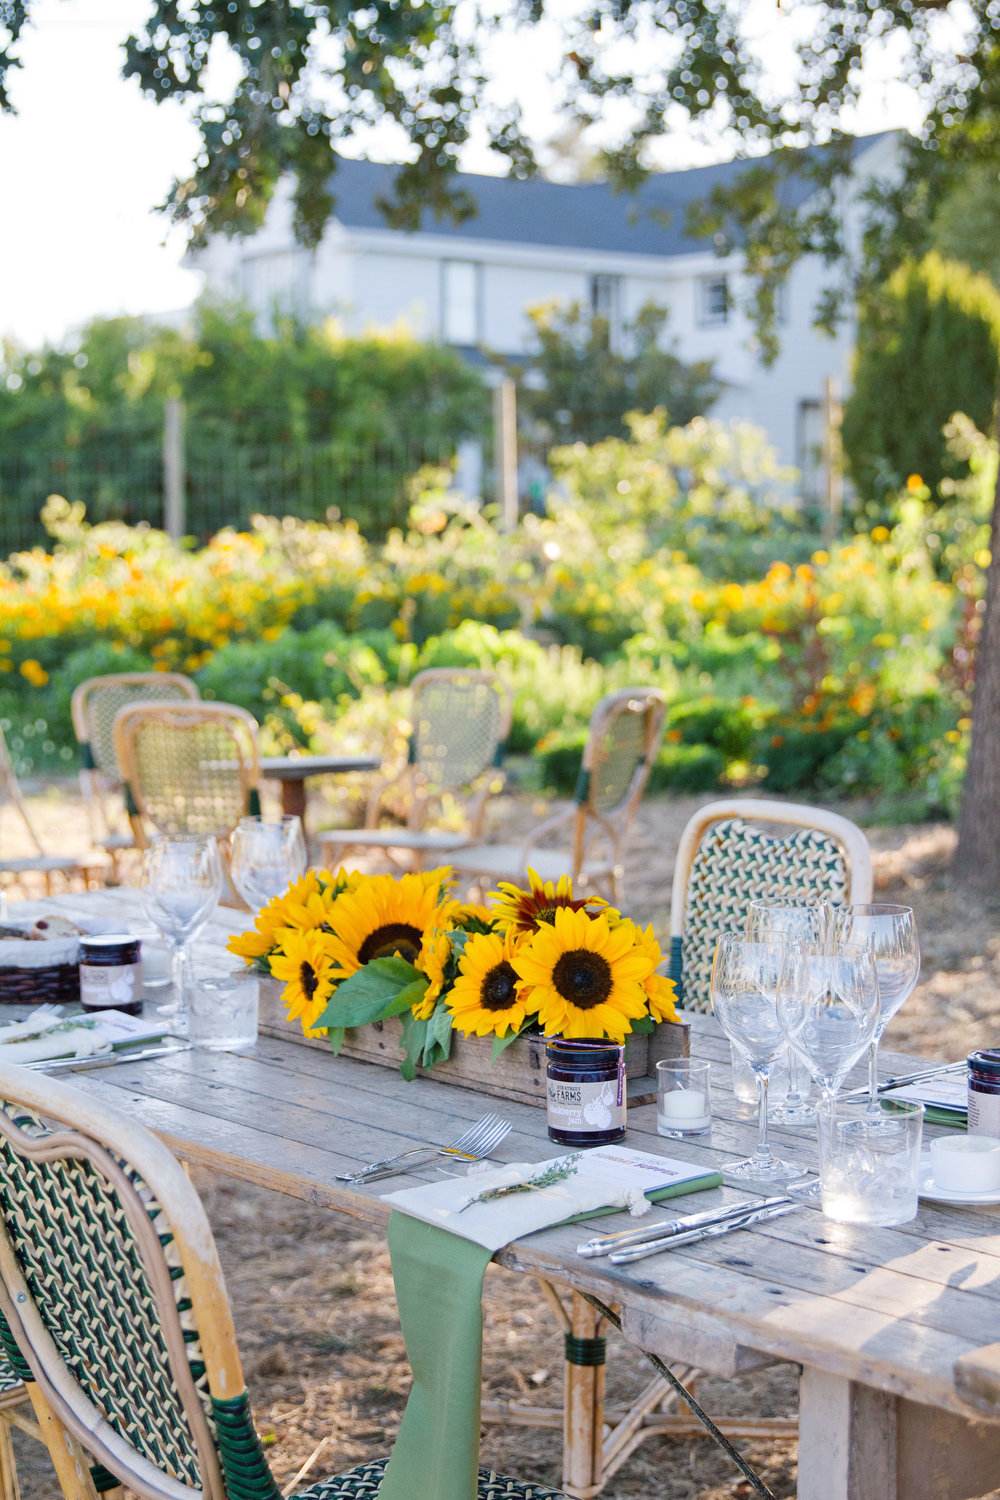 Al fresco dining at the farm with french flair. | 5th Street Farm • chateausonoma.com